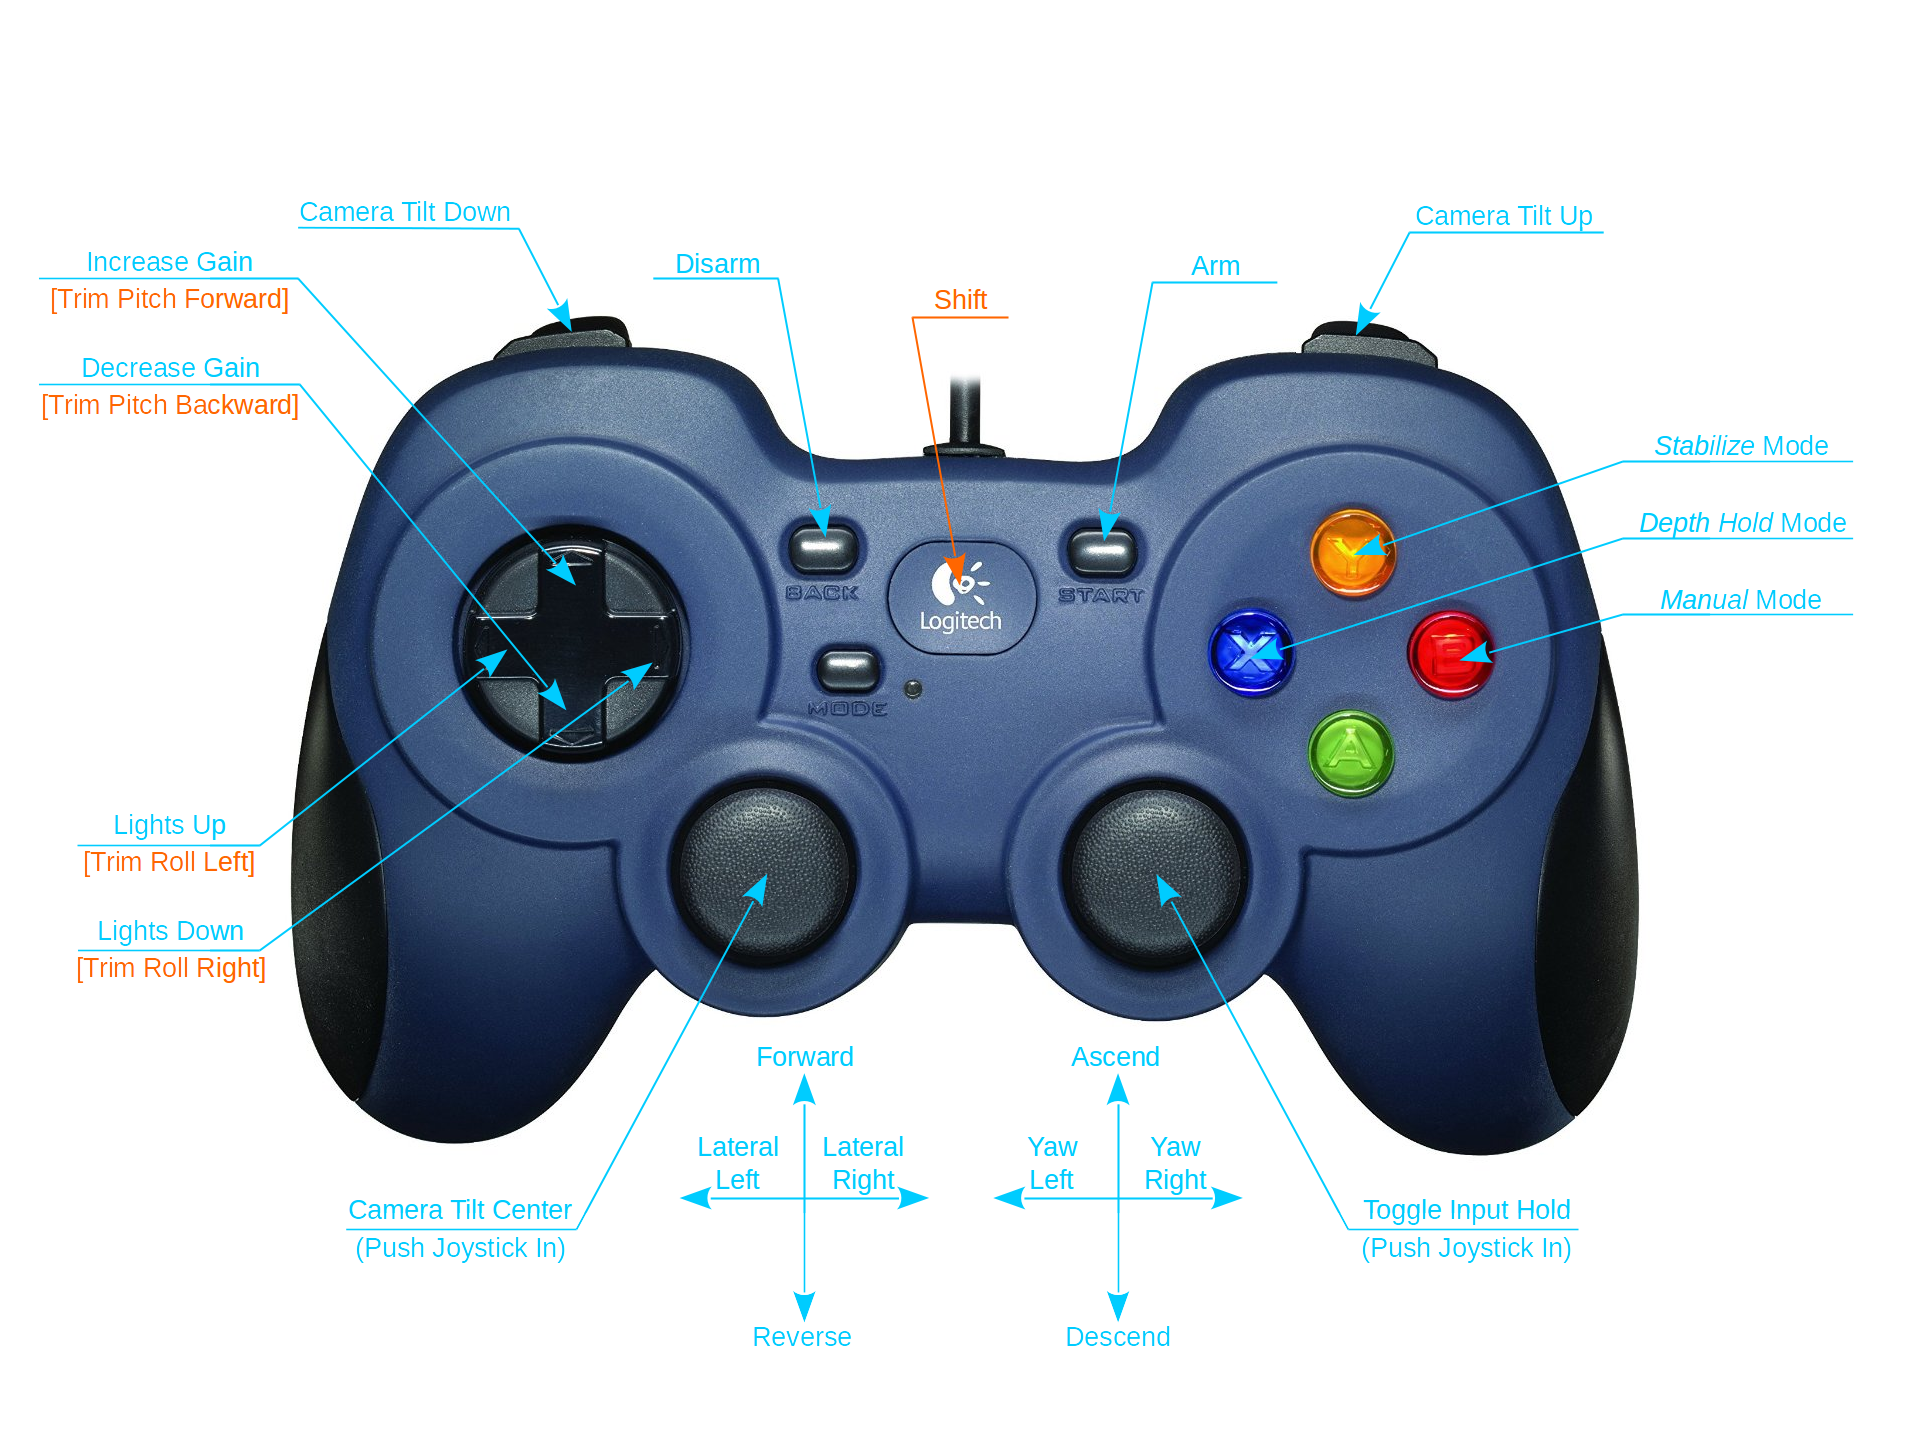 Controller Functions